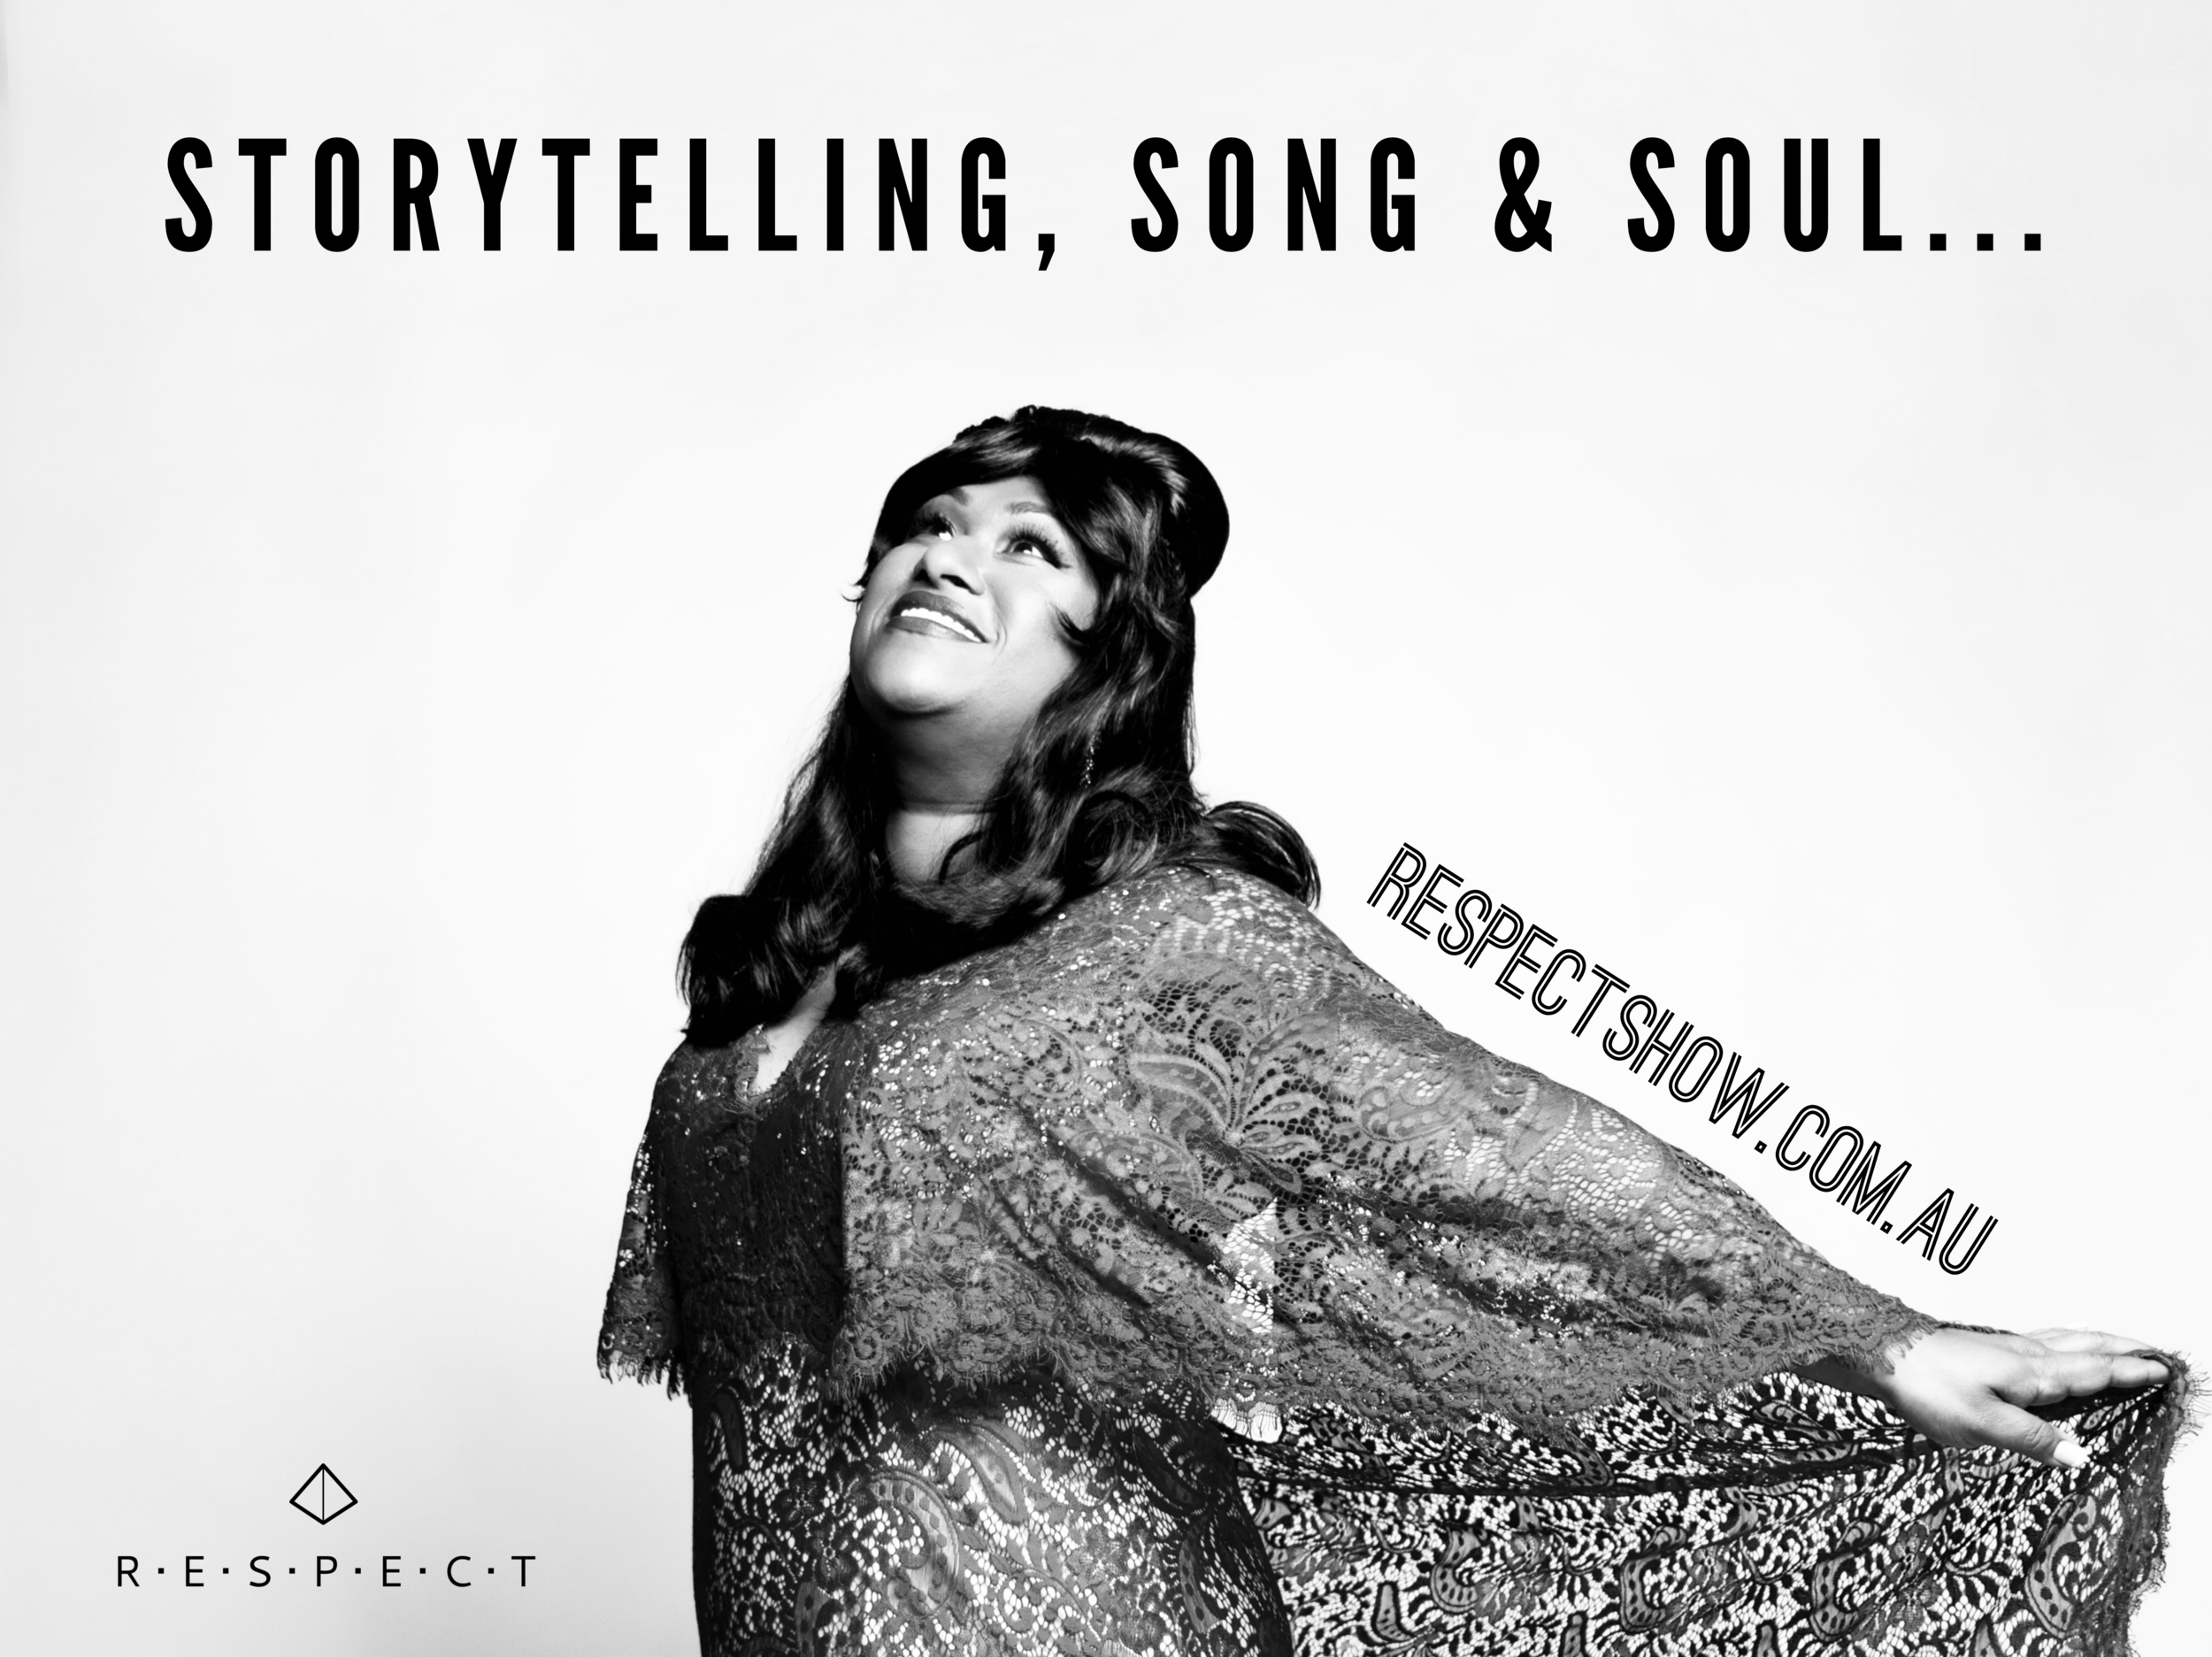 Storytelling, song and soul...